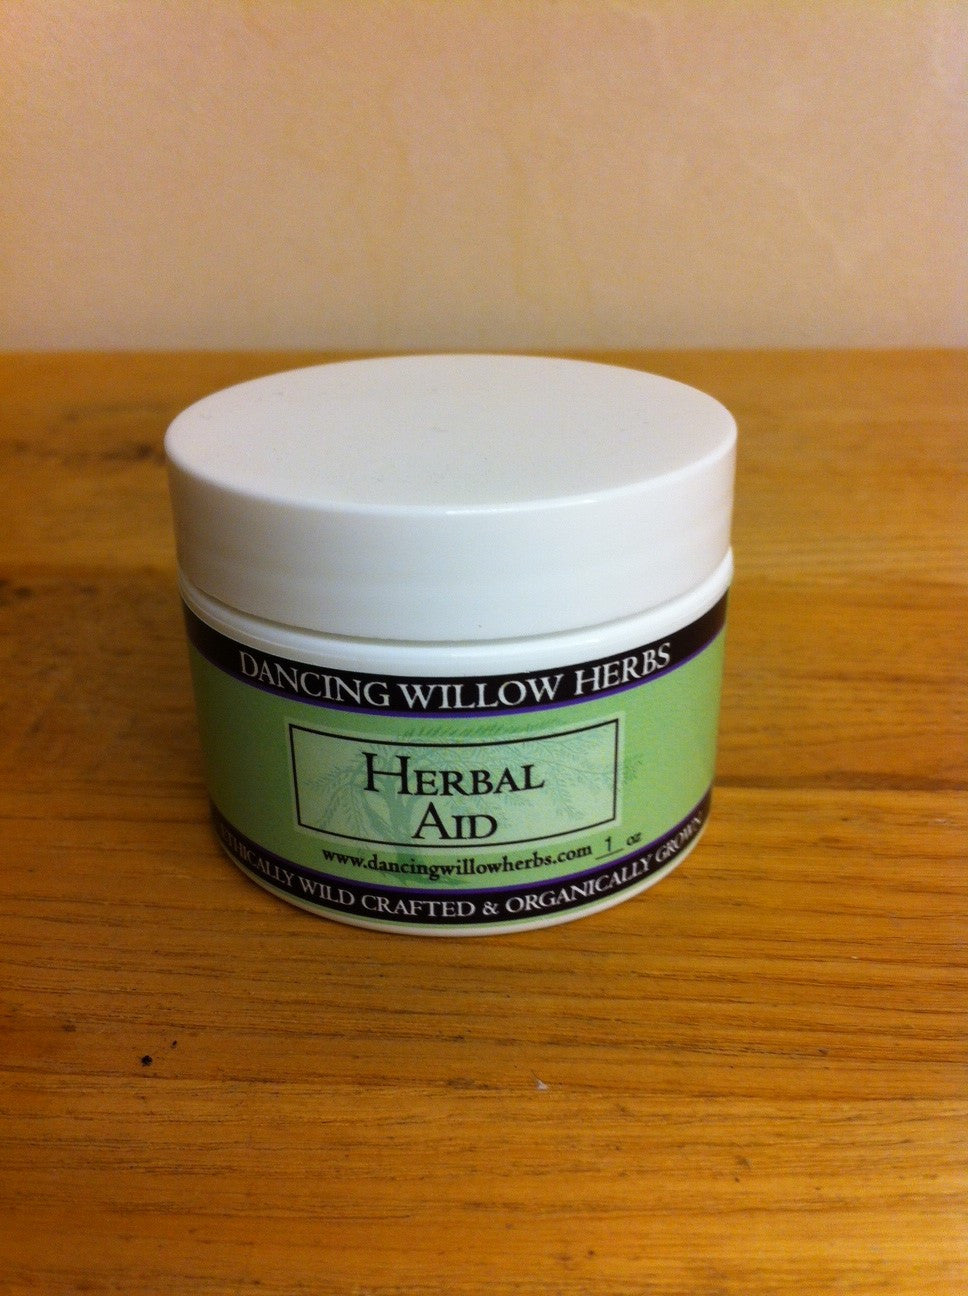 Herbal-Aid Salve 1oz - Dancing Willow Herbs Salve - herbal formulas